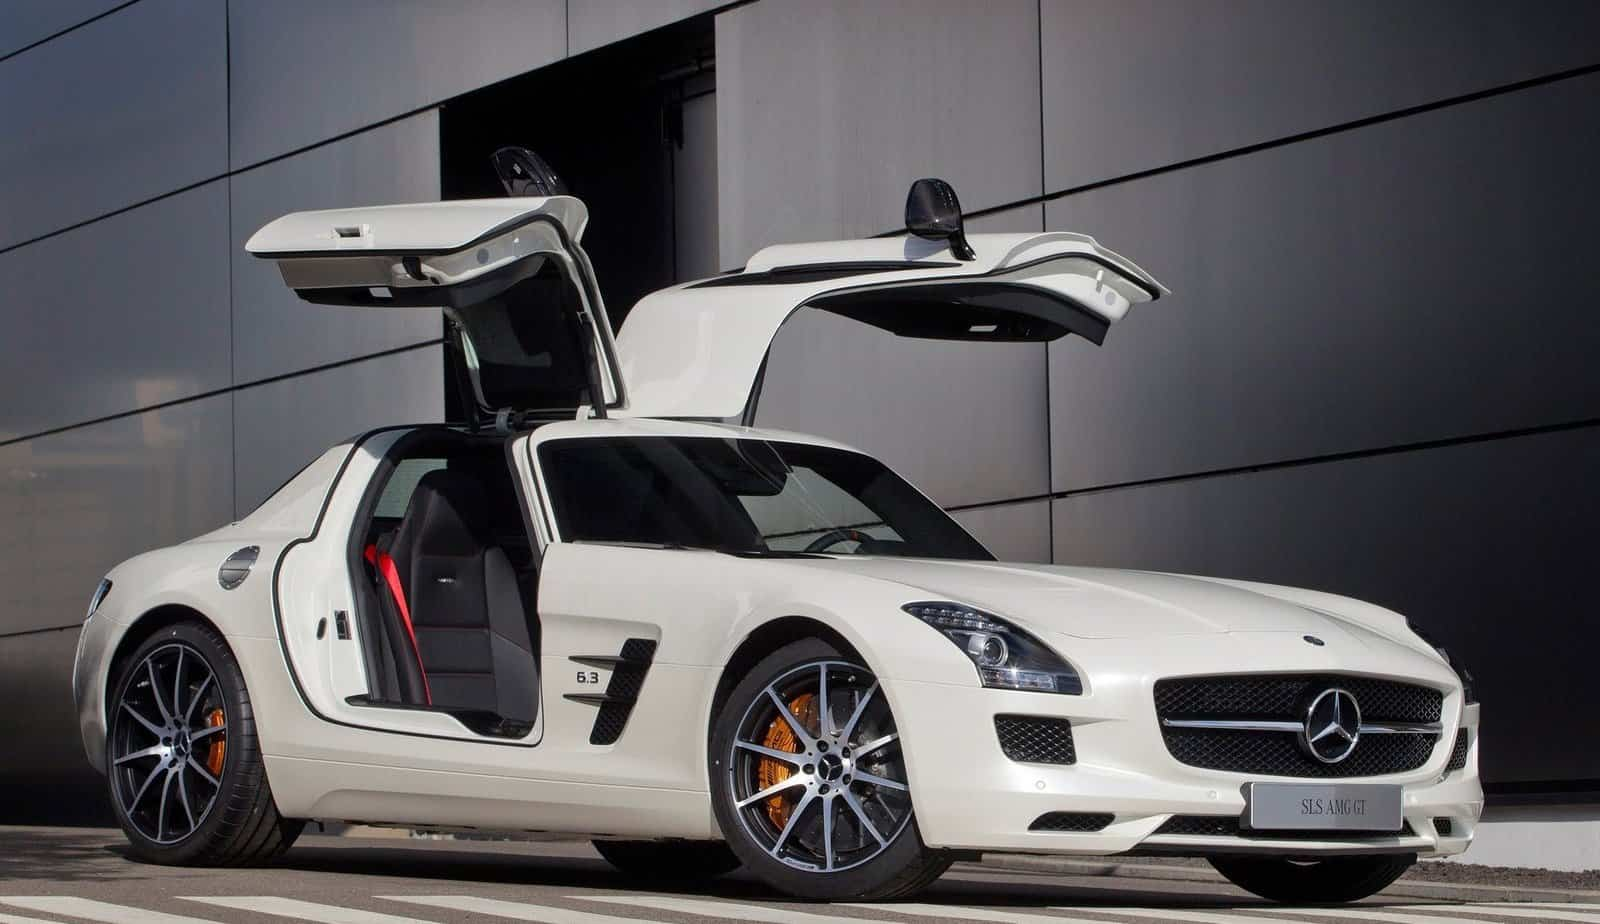 Dream-Cars-Mercedes-Benz-SLS-AMG-GT-Beverly-Hills-Magazine-1